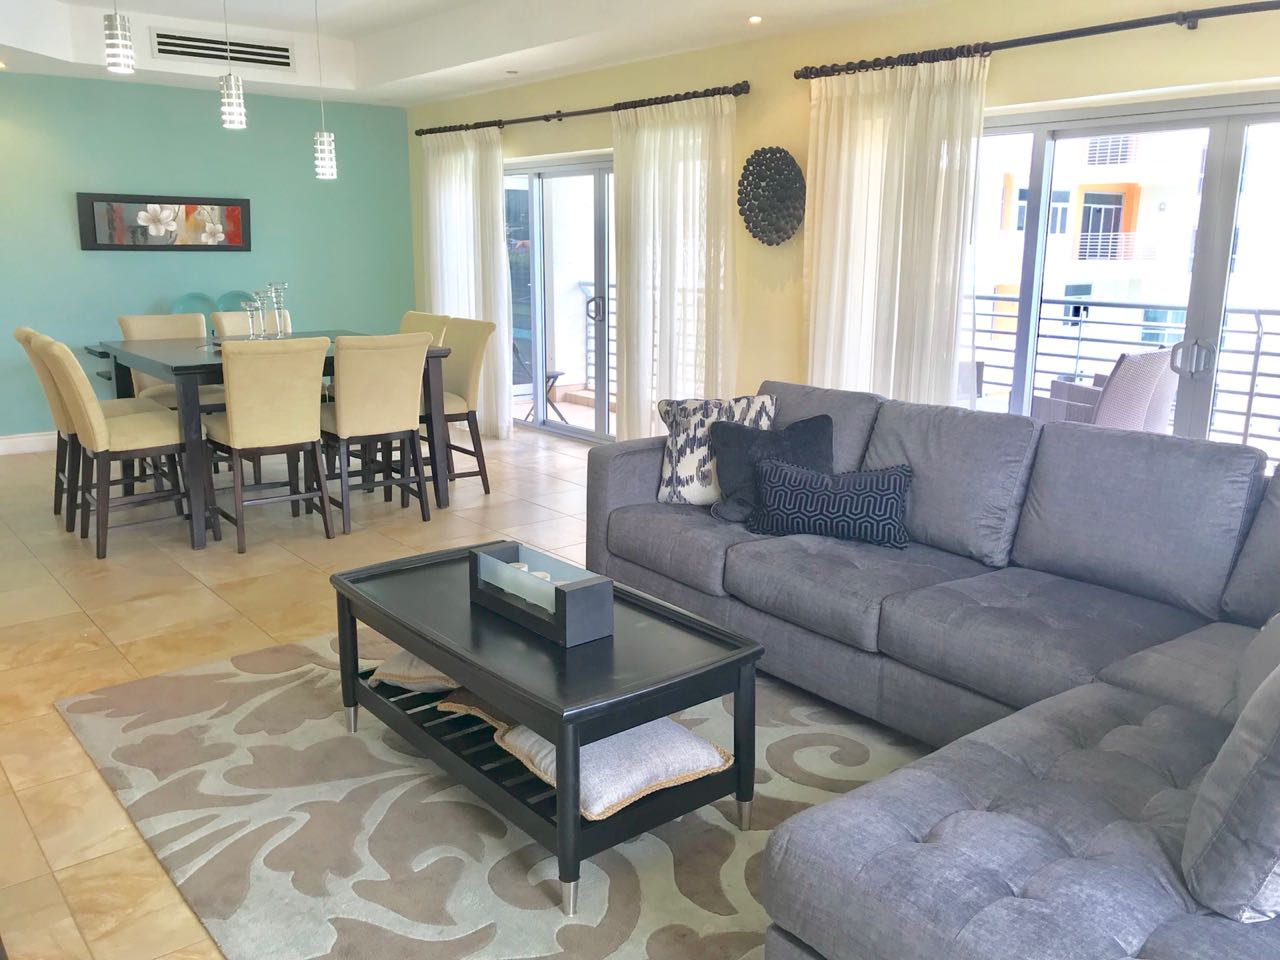 One Woodbrook, 3 bedroom, 2 1/2 bath, 4th floor fully furnished apartment